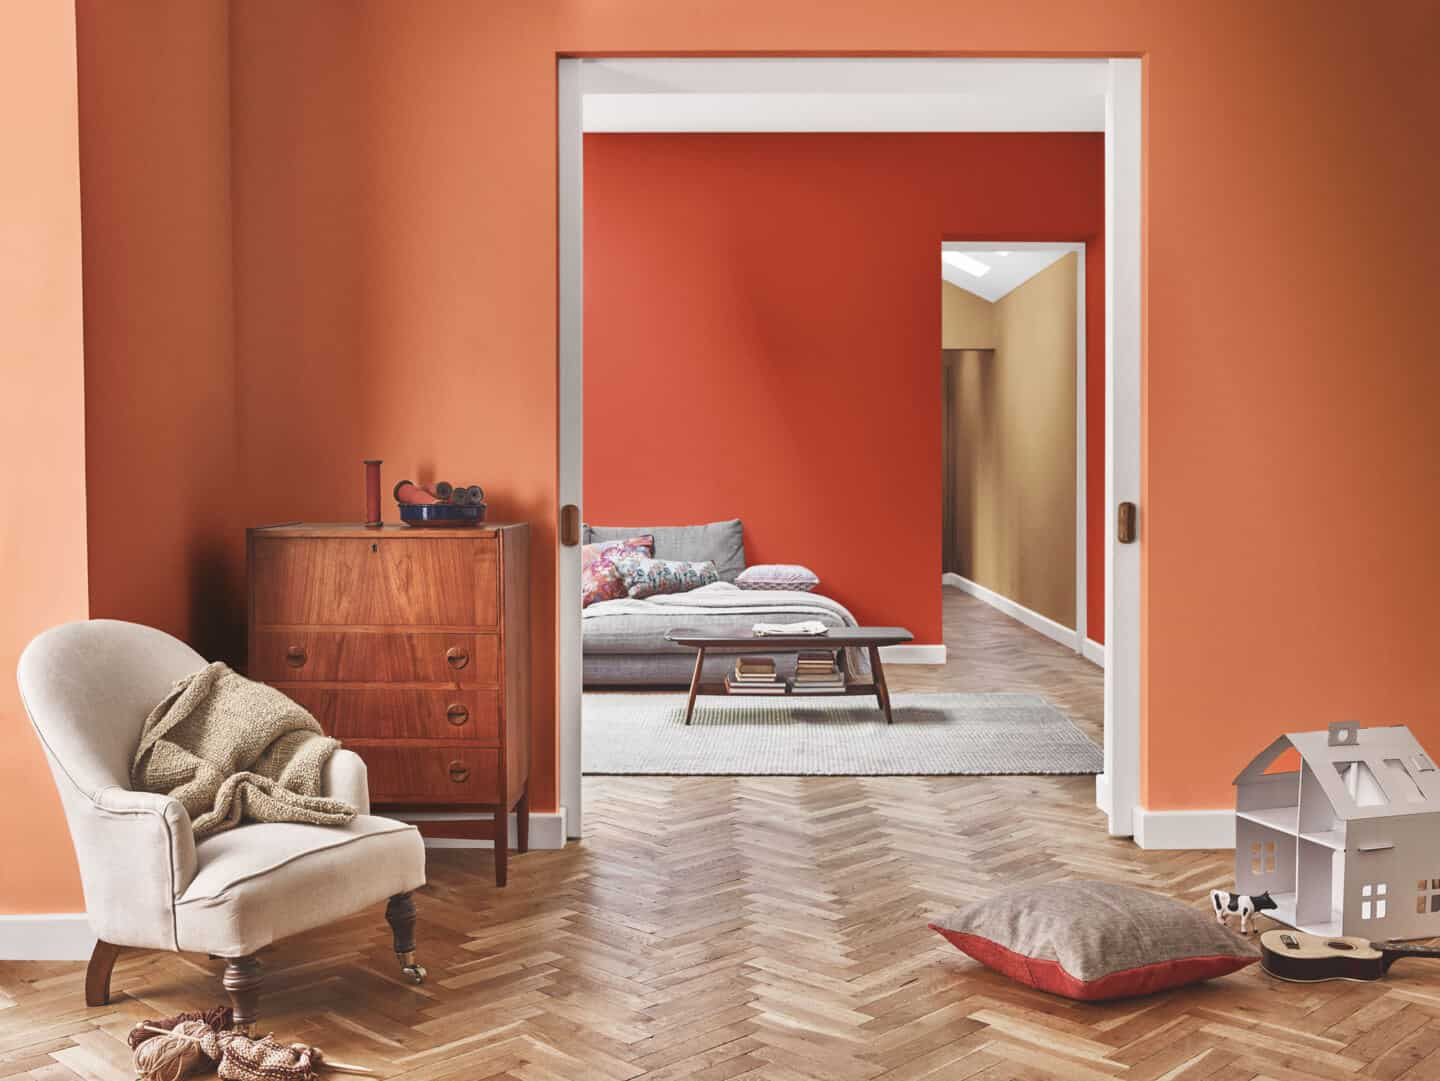 Autumnal Hues in interiors - Dulux colour of th eyear 2019 spiced honey  painted on a wall that is visible through two doorways.